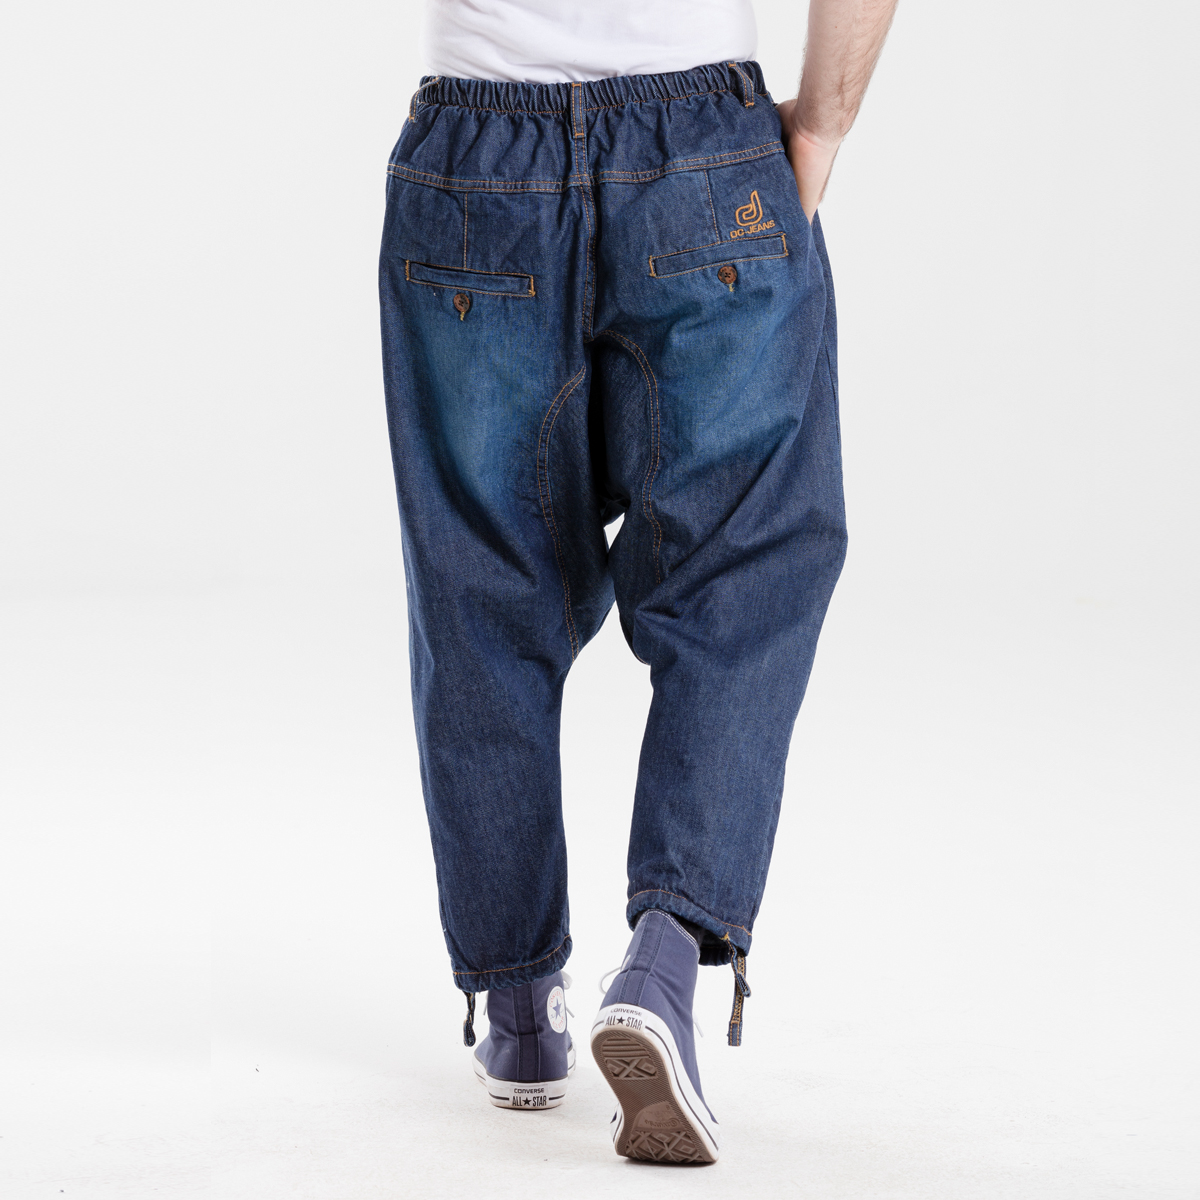 saroual jeans evo blue used dcjeans dos